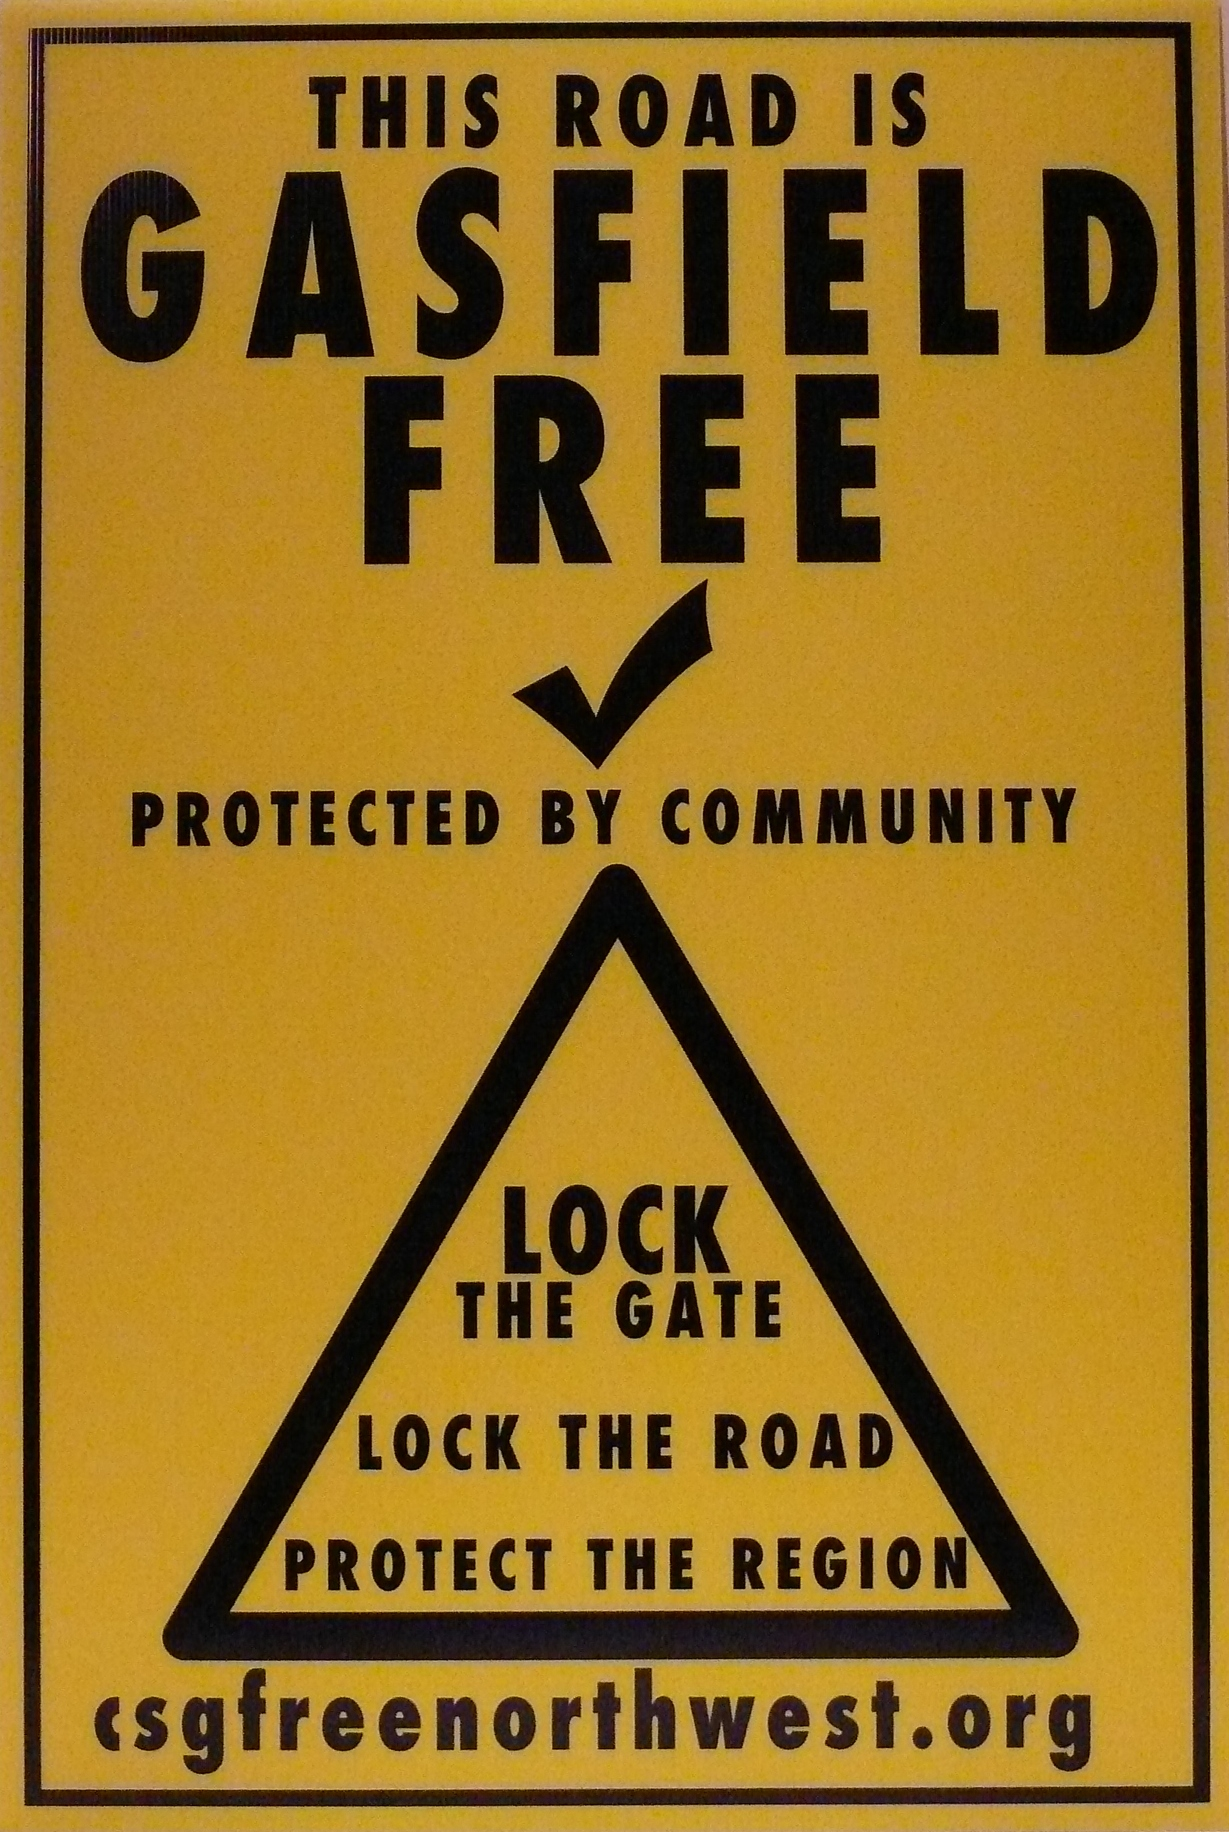 Northwest Gasfield Free